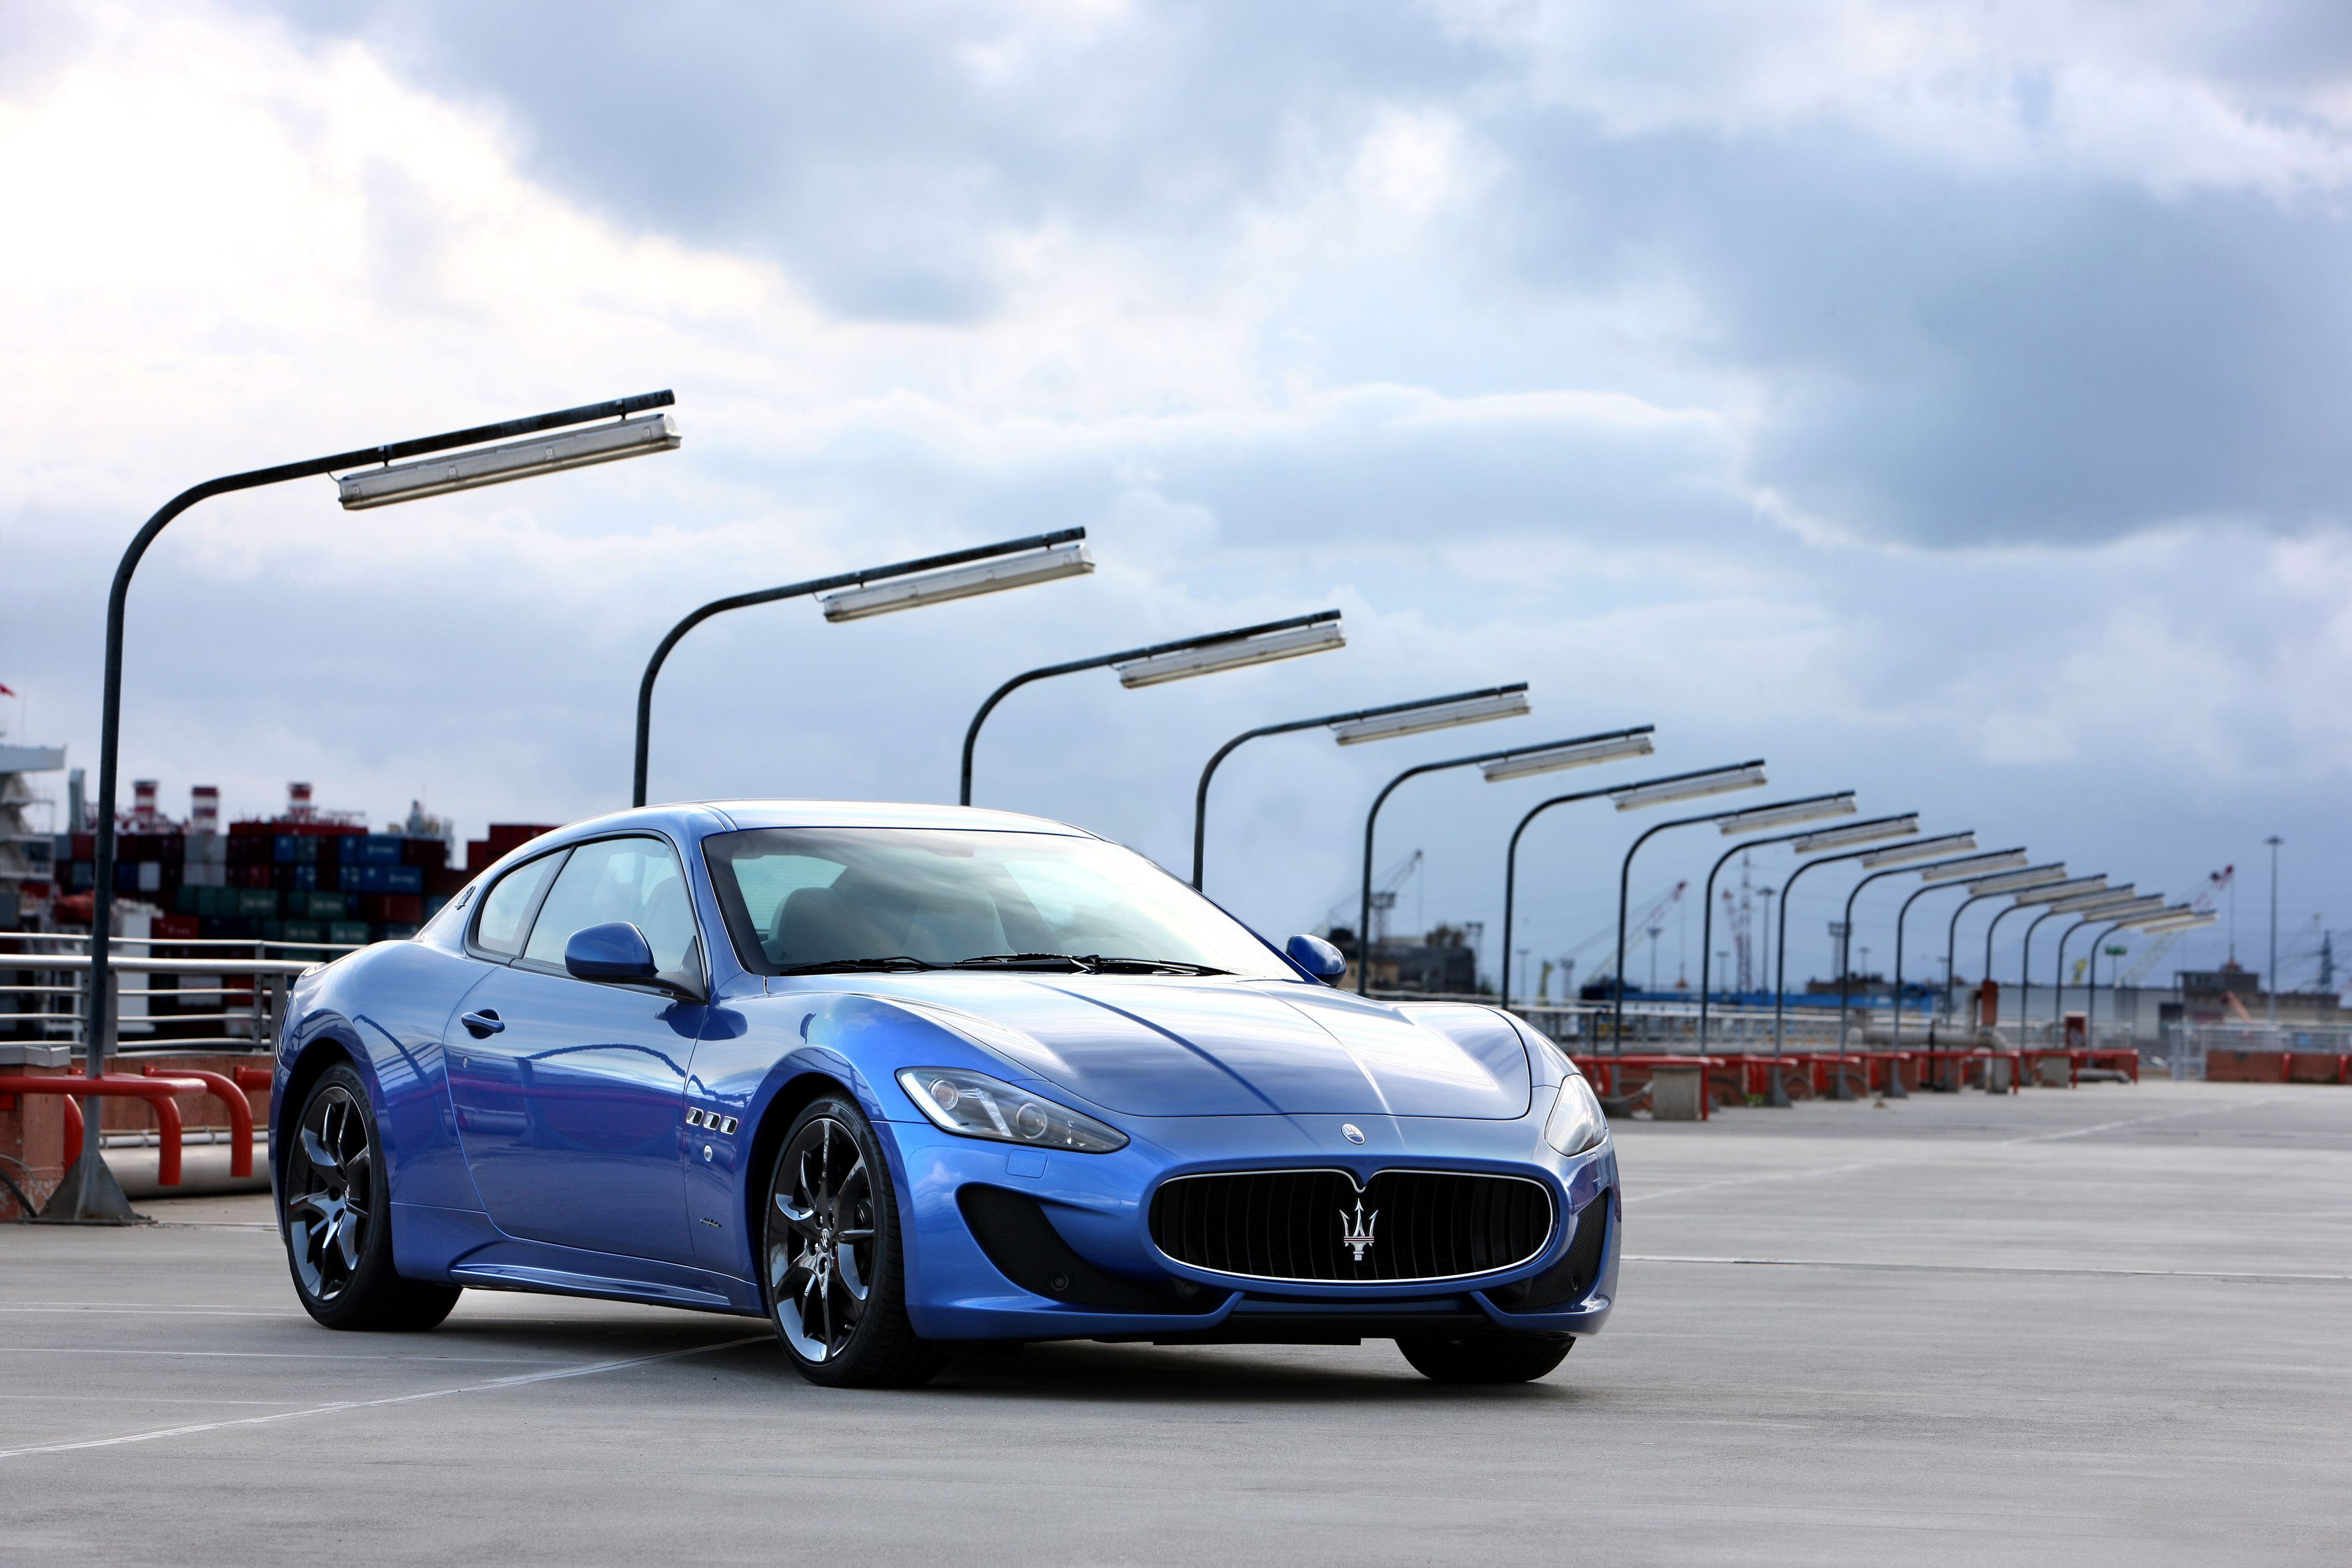 Sportiness and elegance have been redefined with the